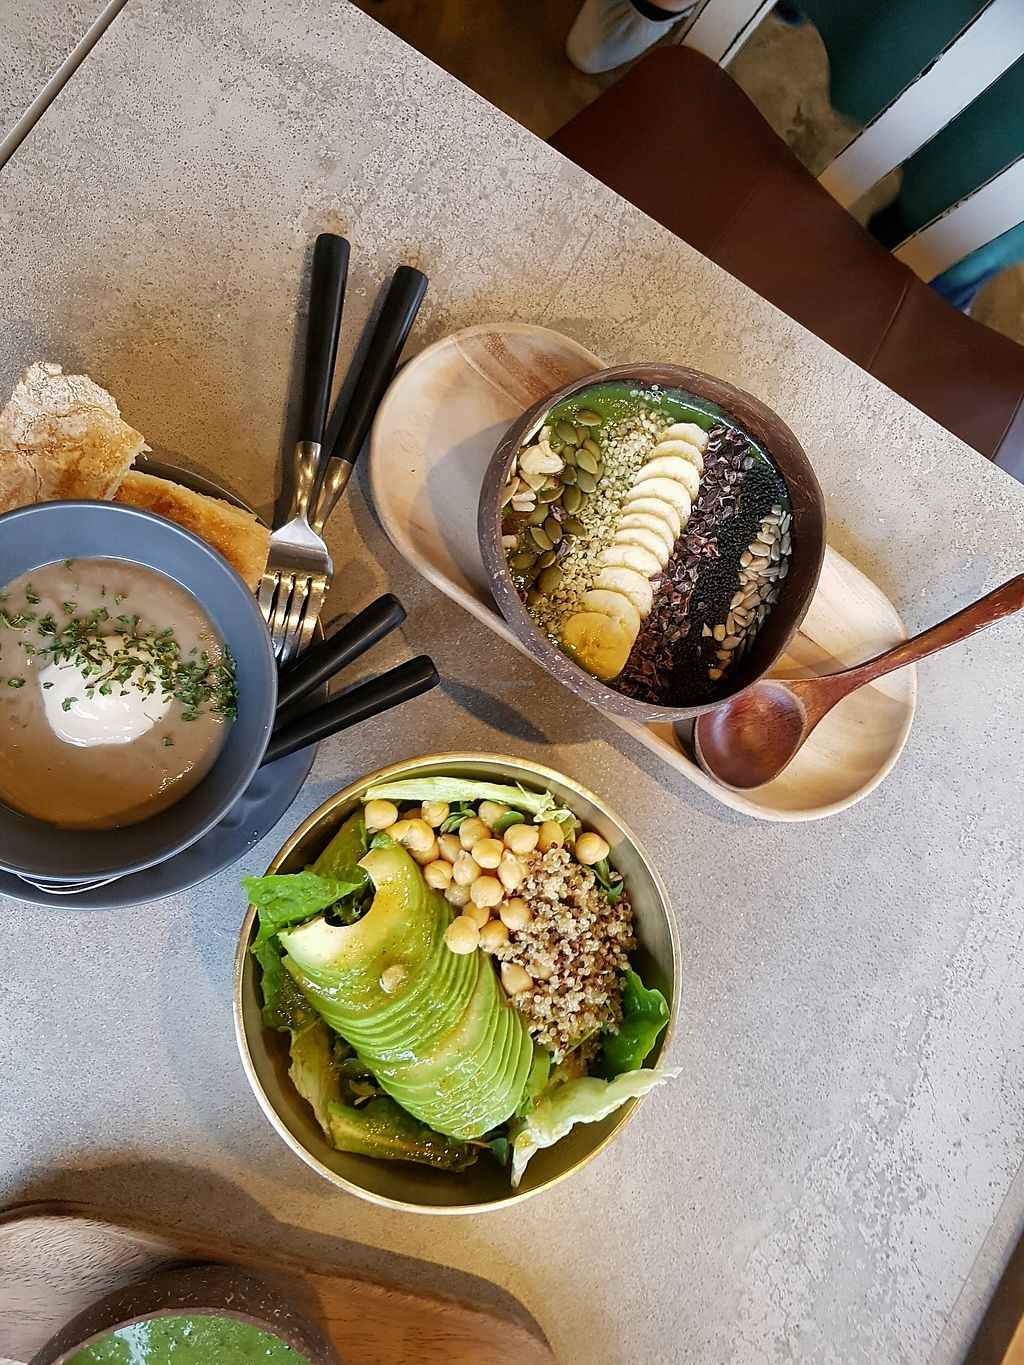 """Photo of Cafe901  by <a href=""""/members/profile/JiwooChoi"""">JiwooChoi</a> <br/>detox smothie & vegan soup & salad <br/> November 22, 2017  - <a href='/contact/abuse/image/105696/328184'>Report</a>"""